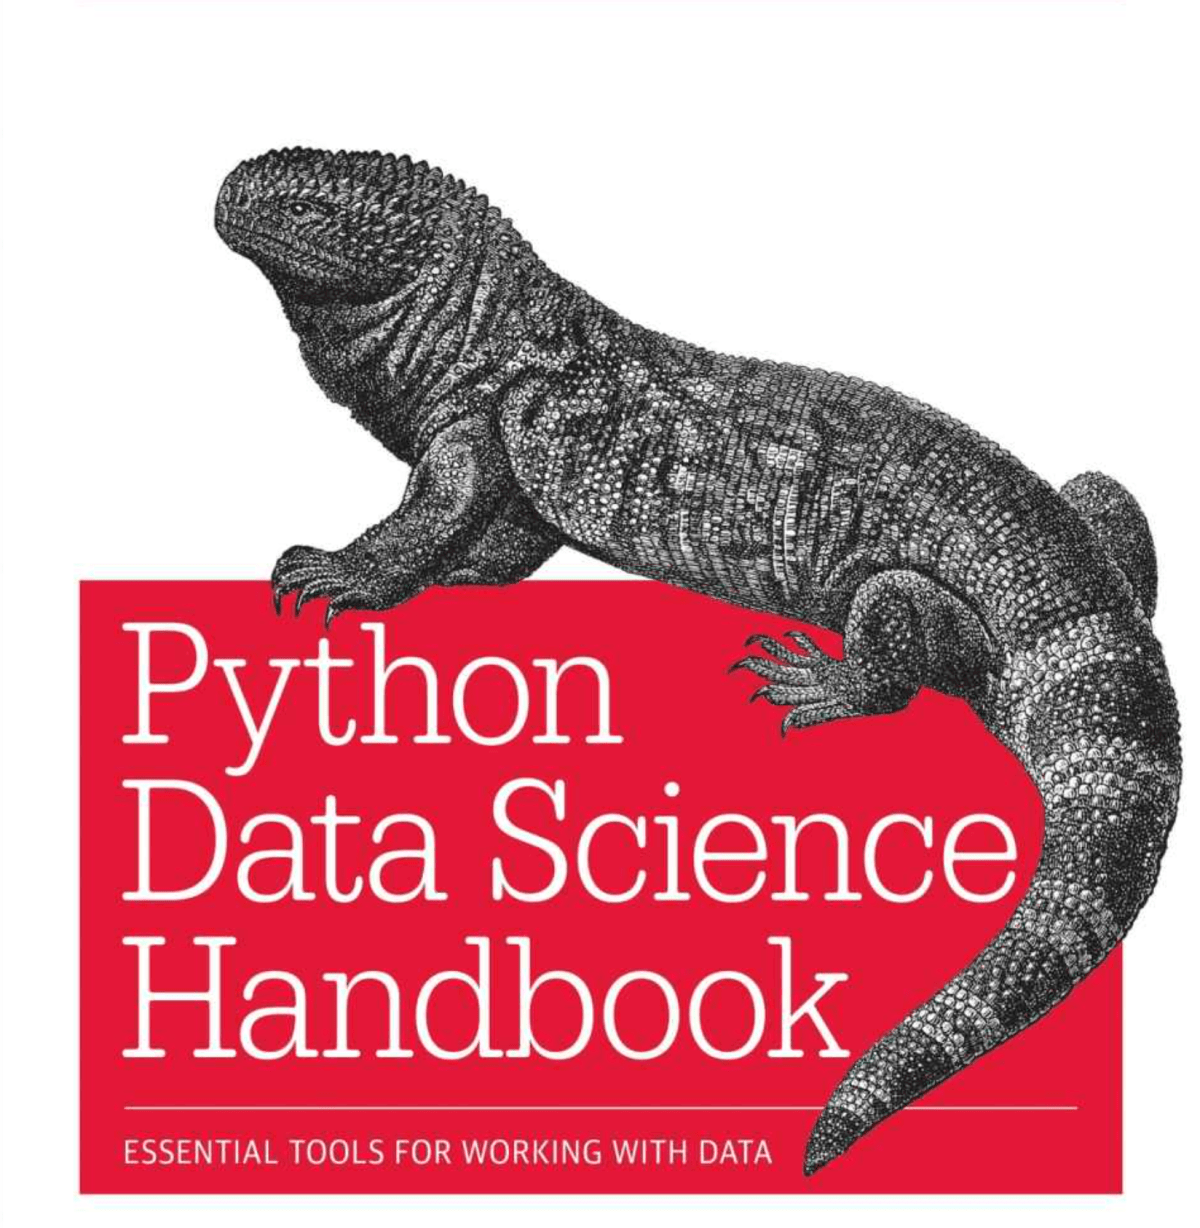 Buch Python Data Science Handbook